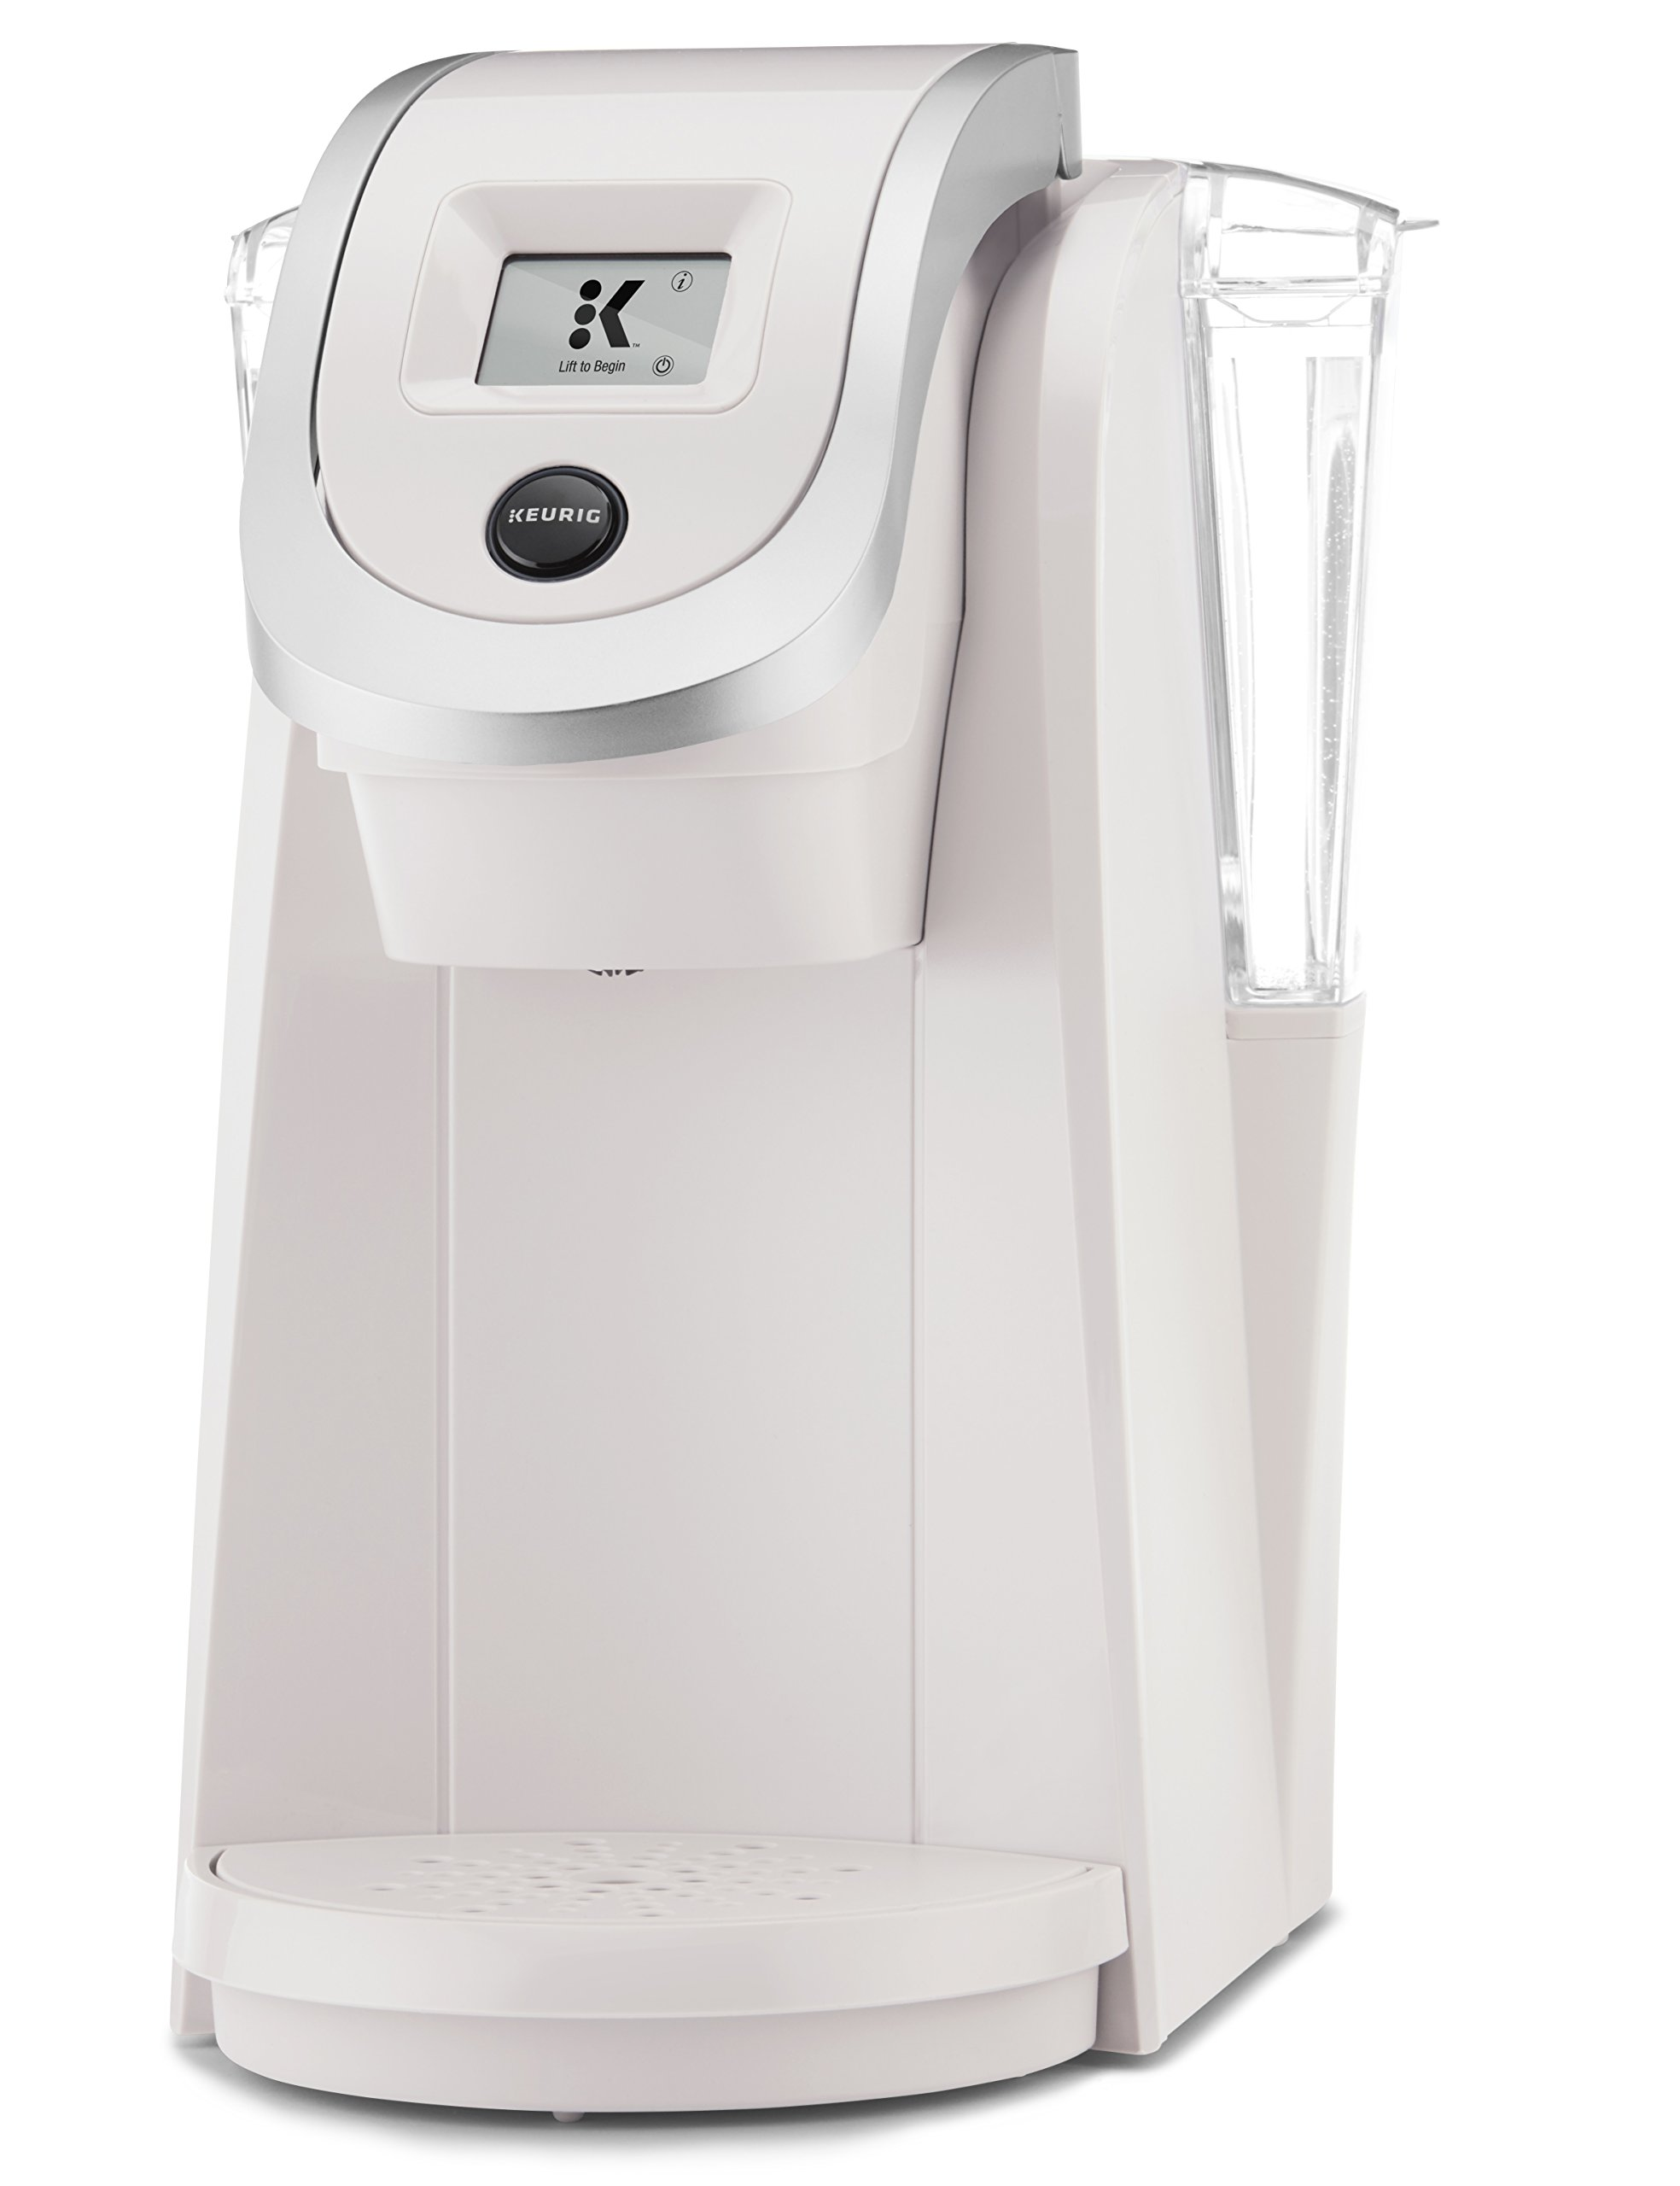 Keurig K250 Single Serve, Programmable K-Cup Pod Coffee Maker with strength control, Sandy Pearl by Keurig (Image #3)